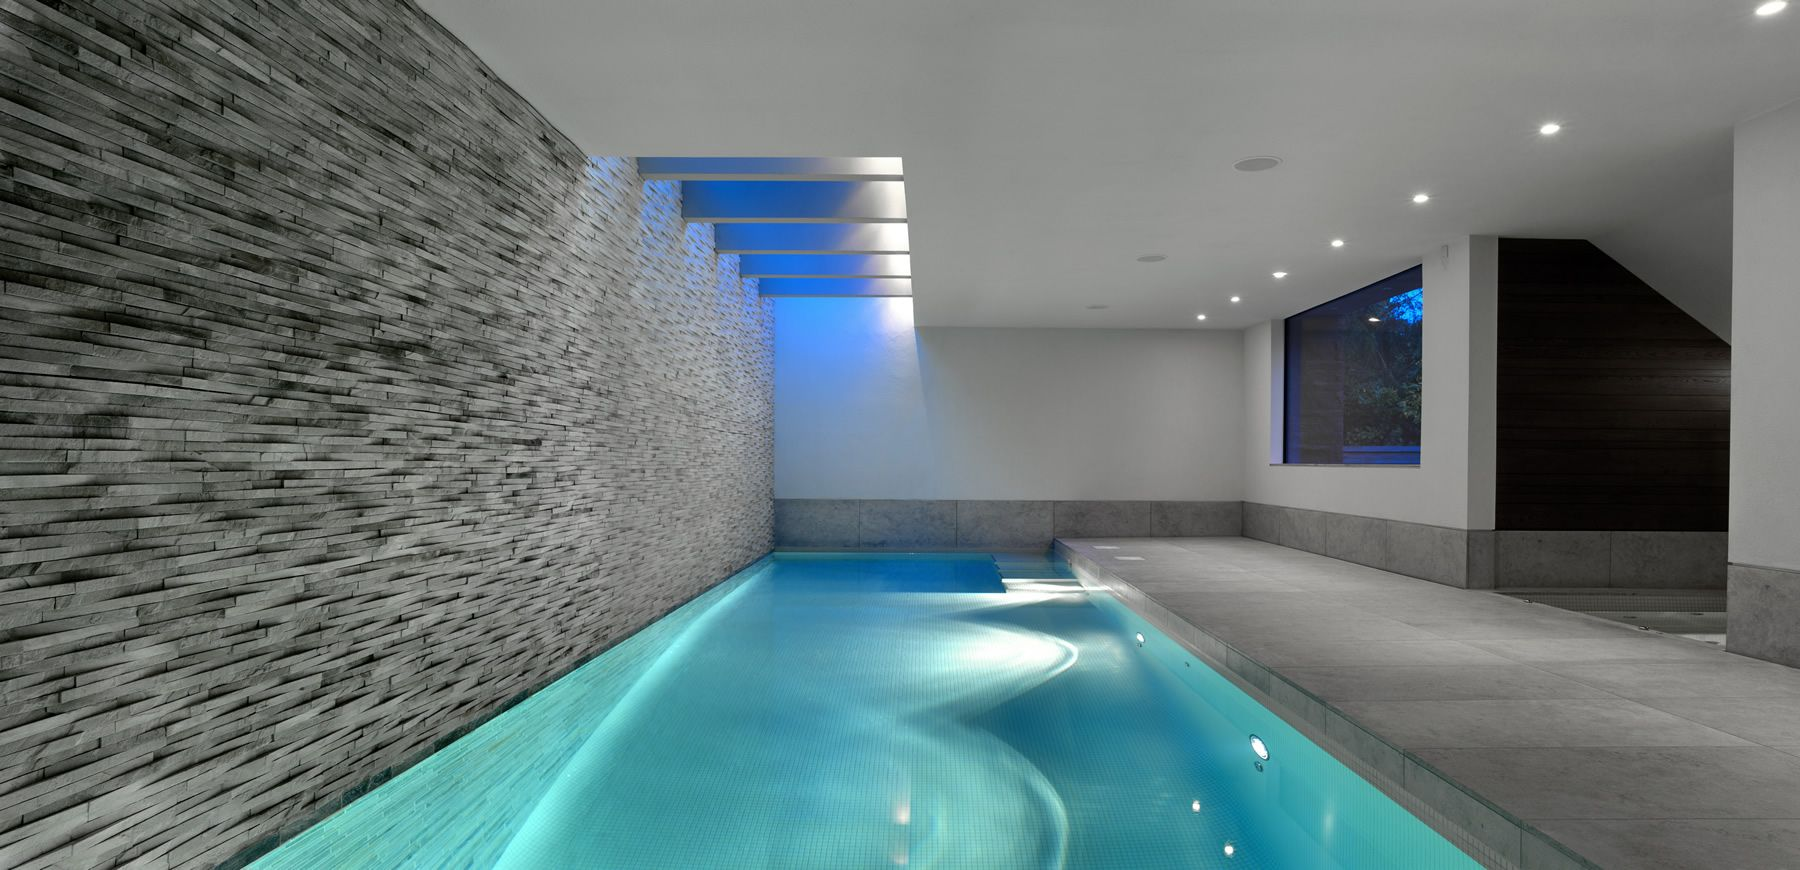 Astounding indoor swimming pool design image 381 50 for Private indoor swimming pools